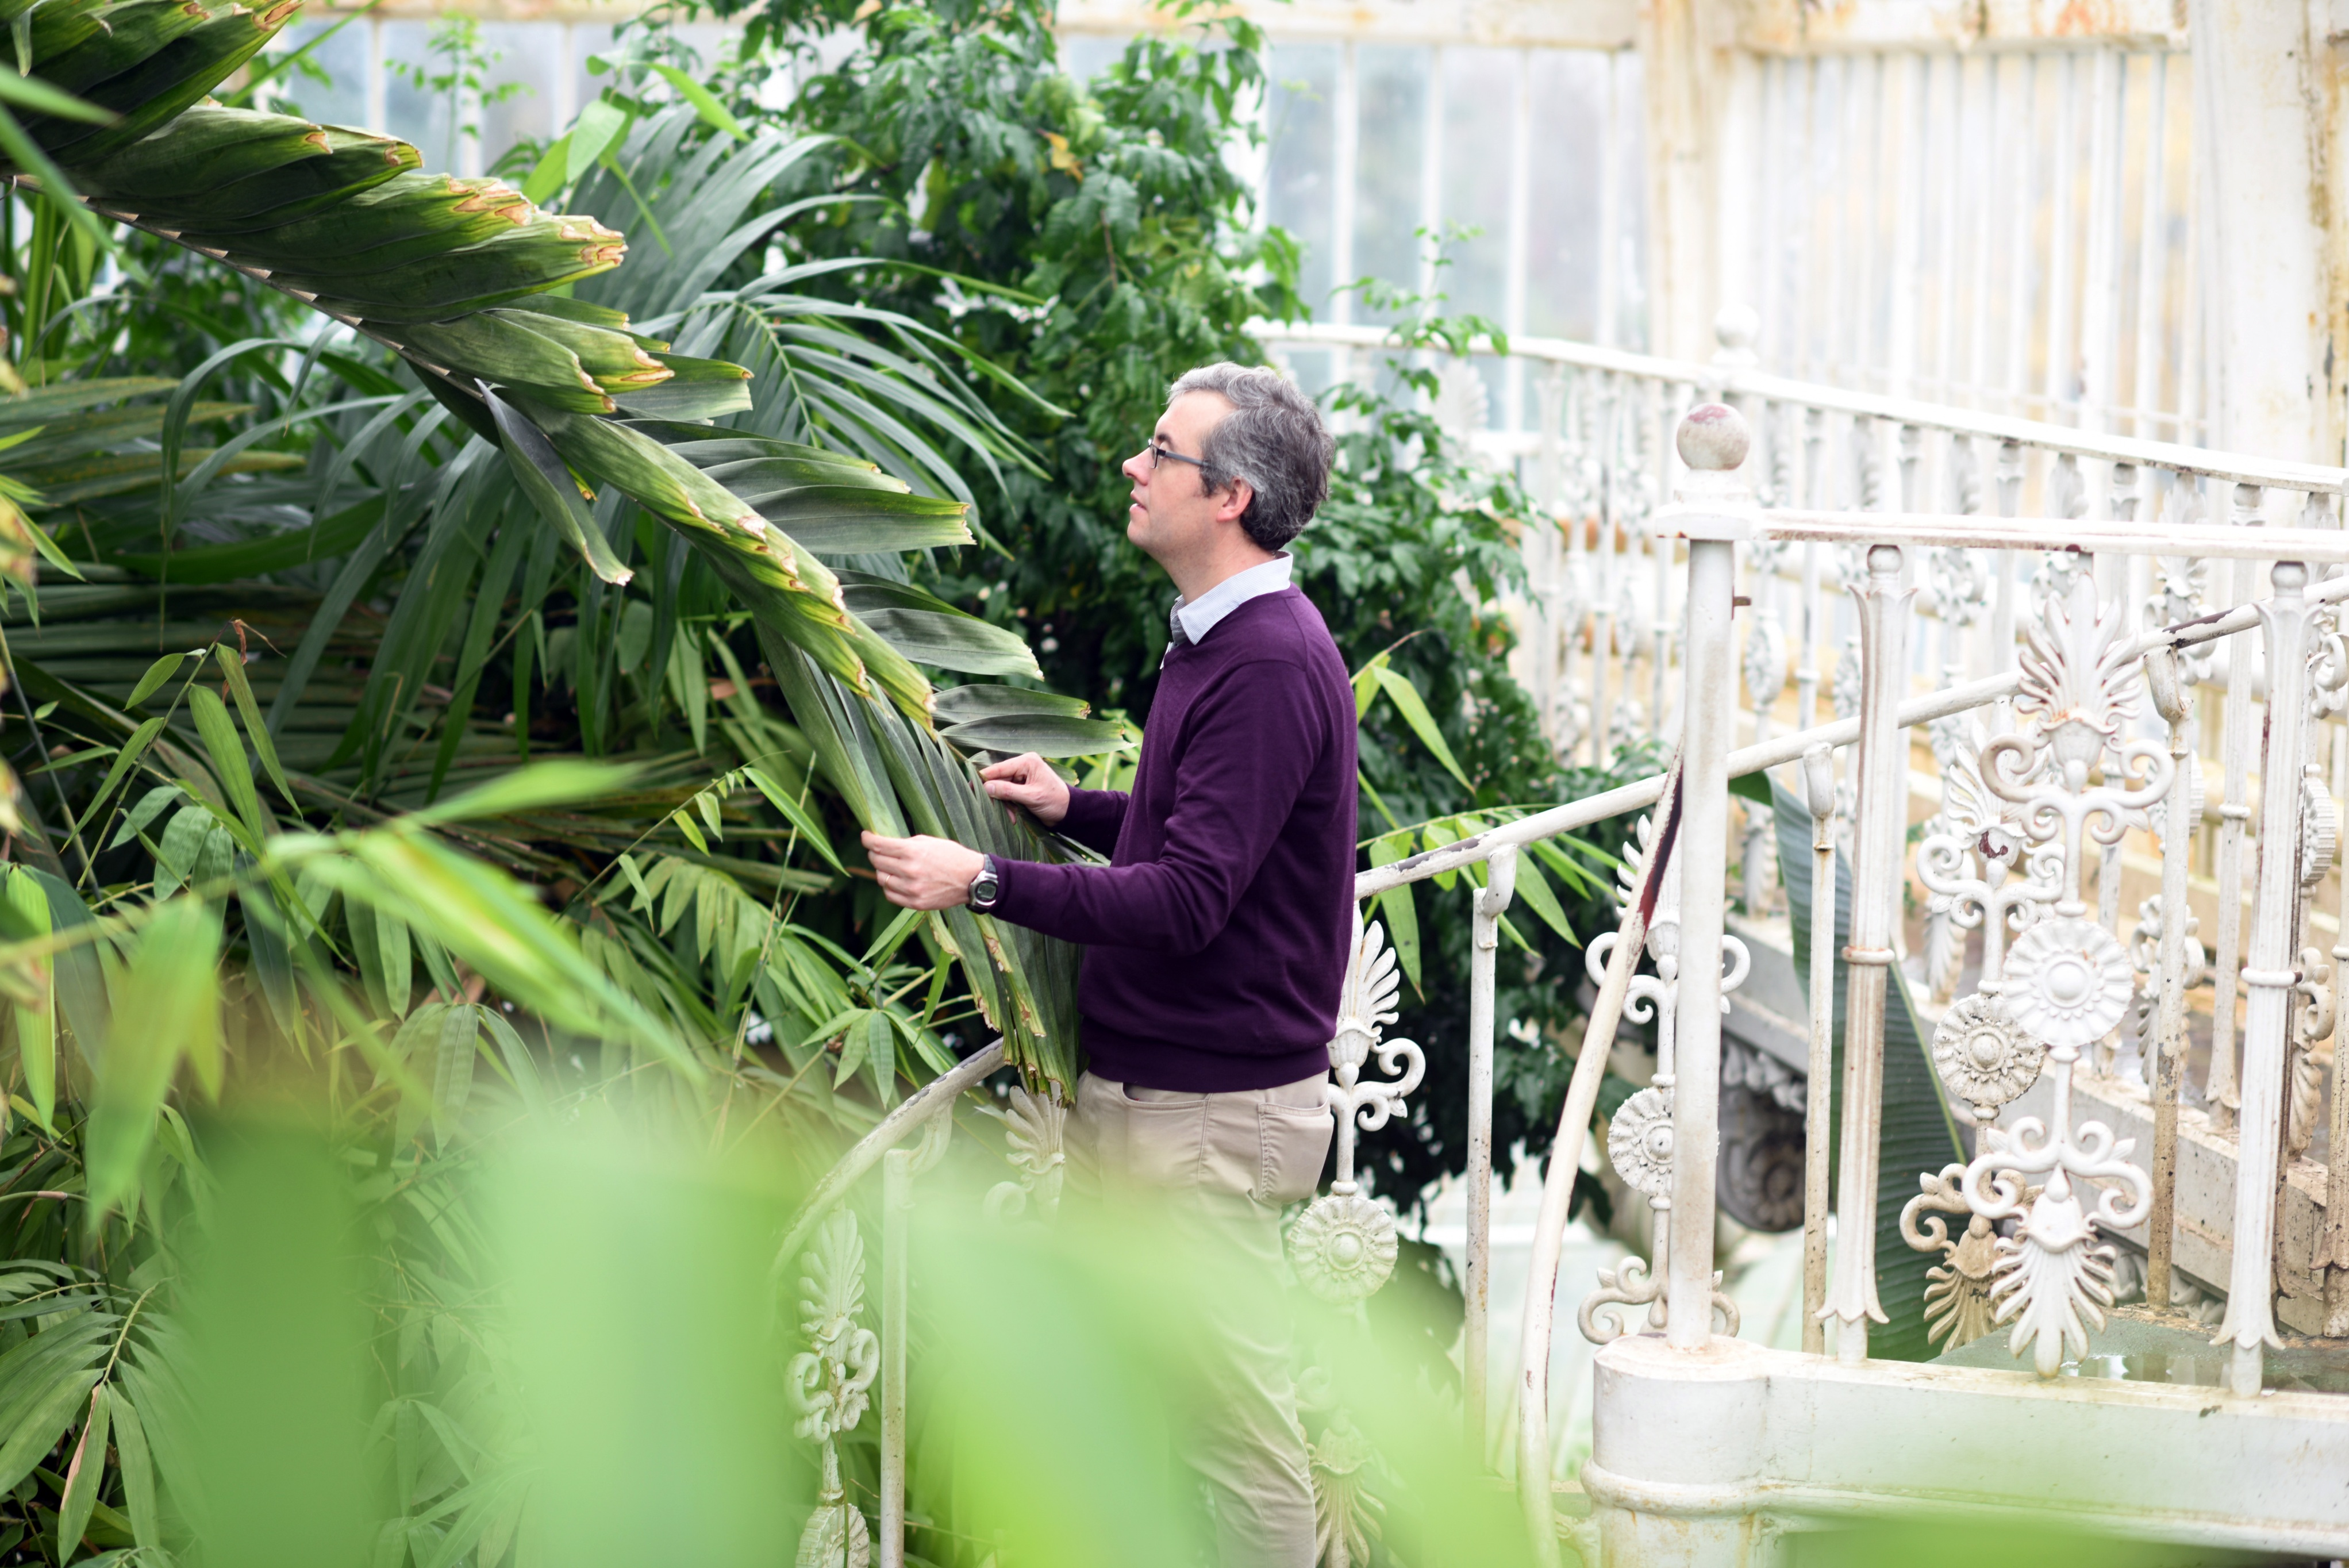 A visitor looks at the Temperate House from the spiral staircase